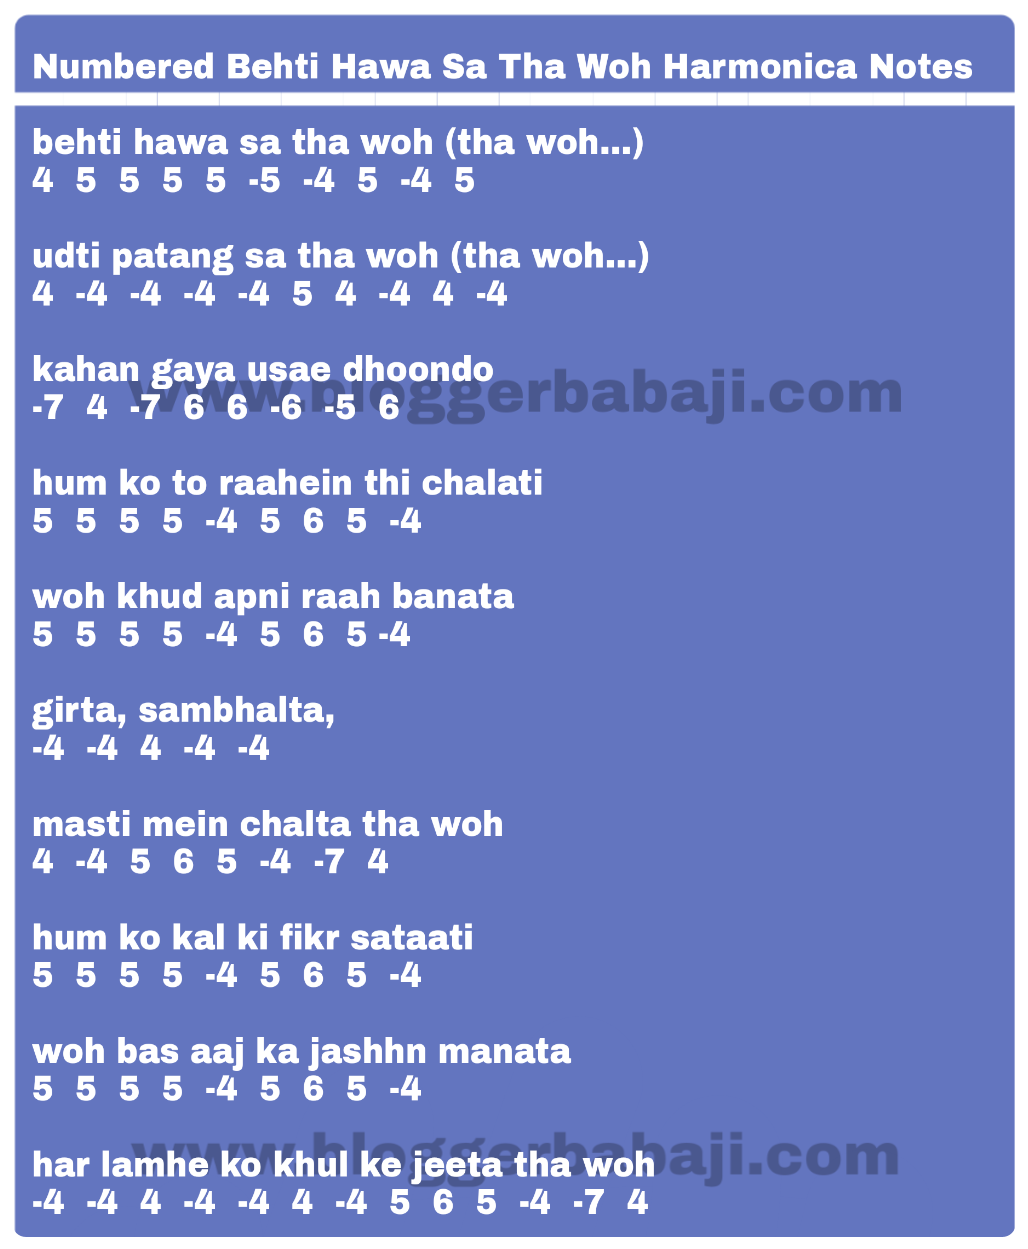 Numbered Behti Hawa Sa Tha Woh Harmonica Notations Notes Key Tabs Kesari here is the harmonica notes for the song and you can write to me if you need any further help to learn this song on harmonica. numbered behti hawa sa tha woh